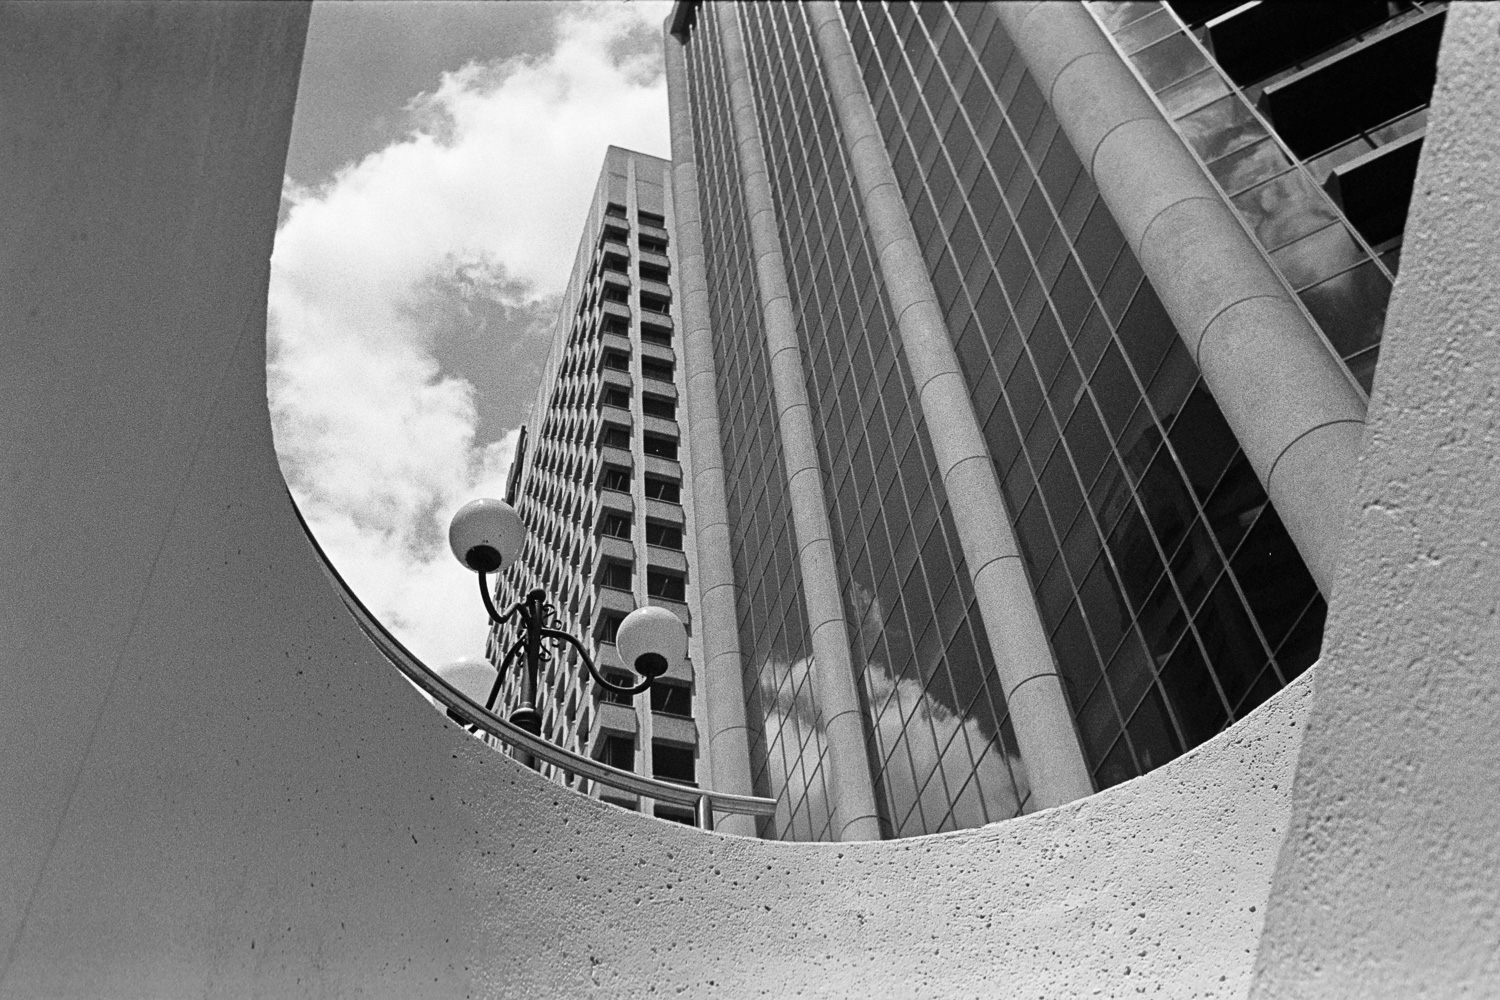 AA011-Nick-Bedford,-Photographer-Black and White, Brisbane, Film, Film Scanning, Kodak Tri-X 400, Nikkor 35mm F2 AI-s, Nikon FA, Pakon F135+, Rodinal, Street Photography, Summer.jpg